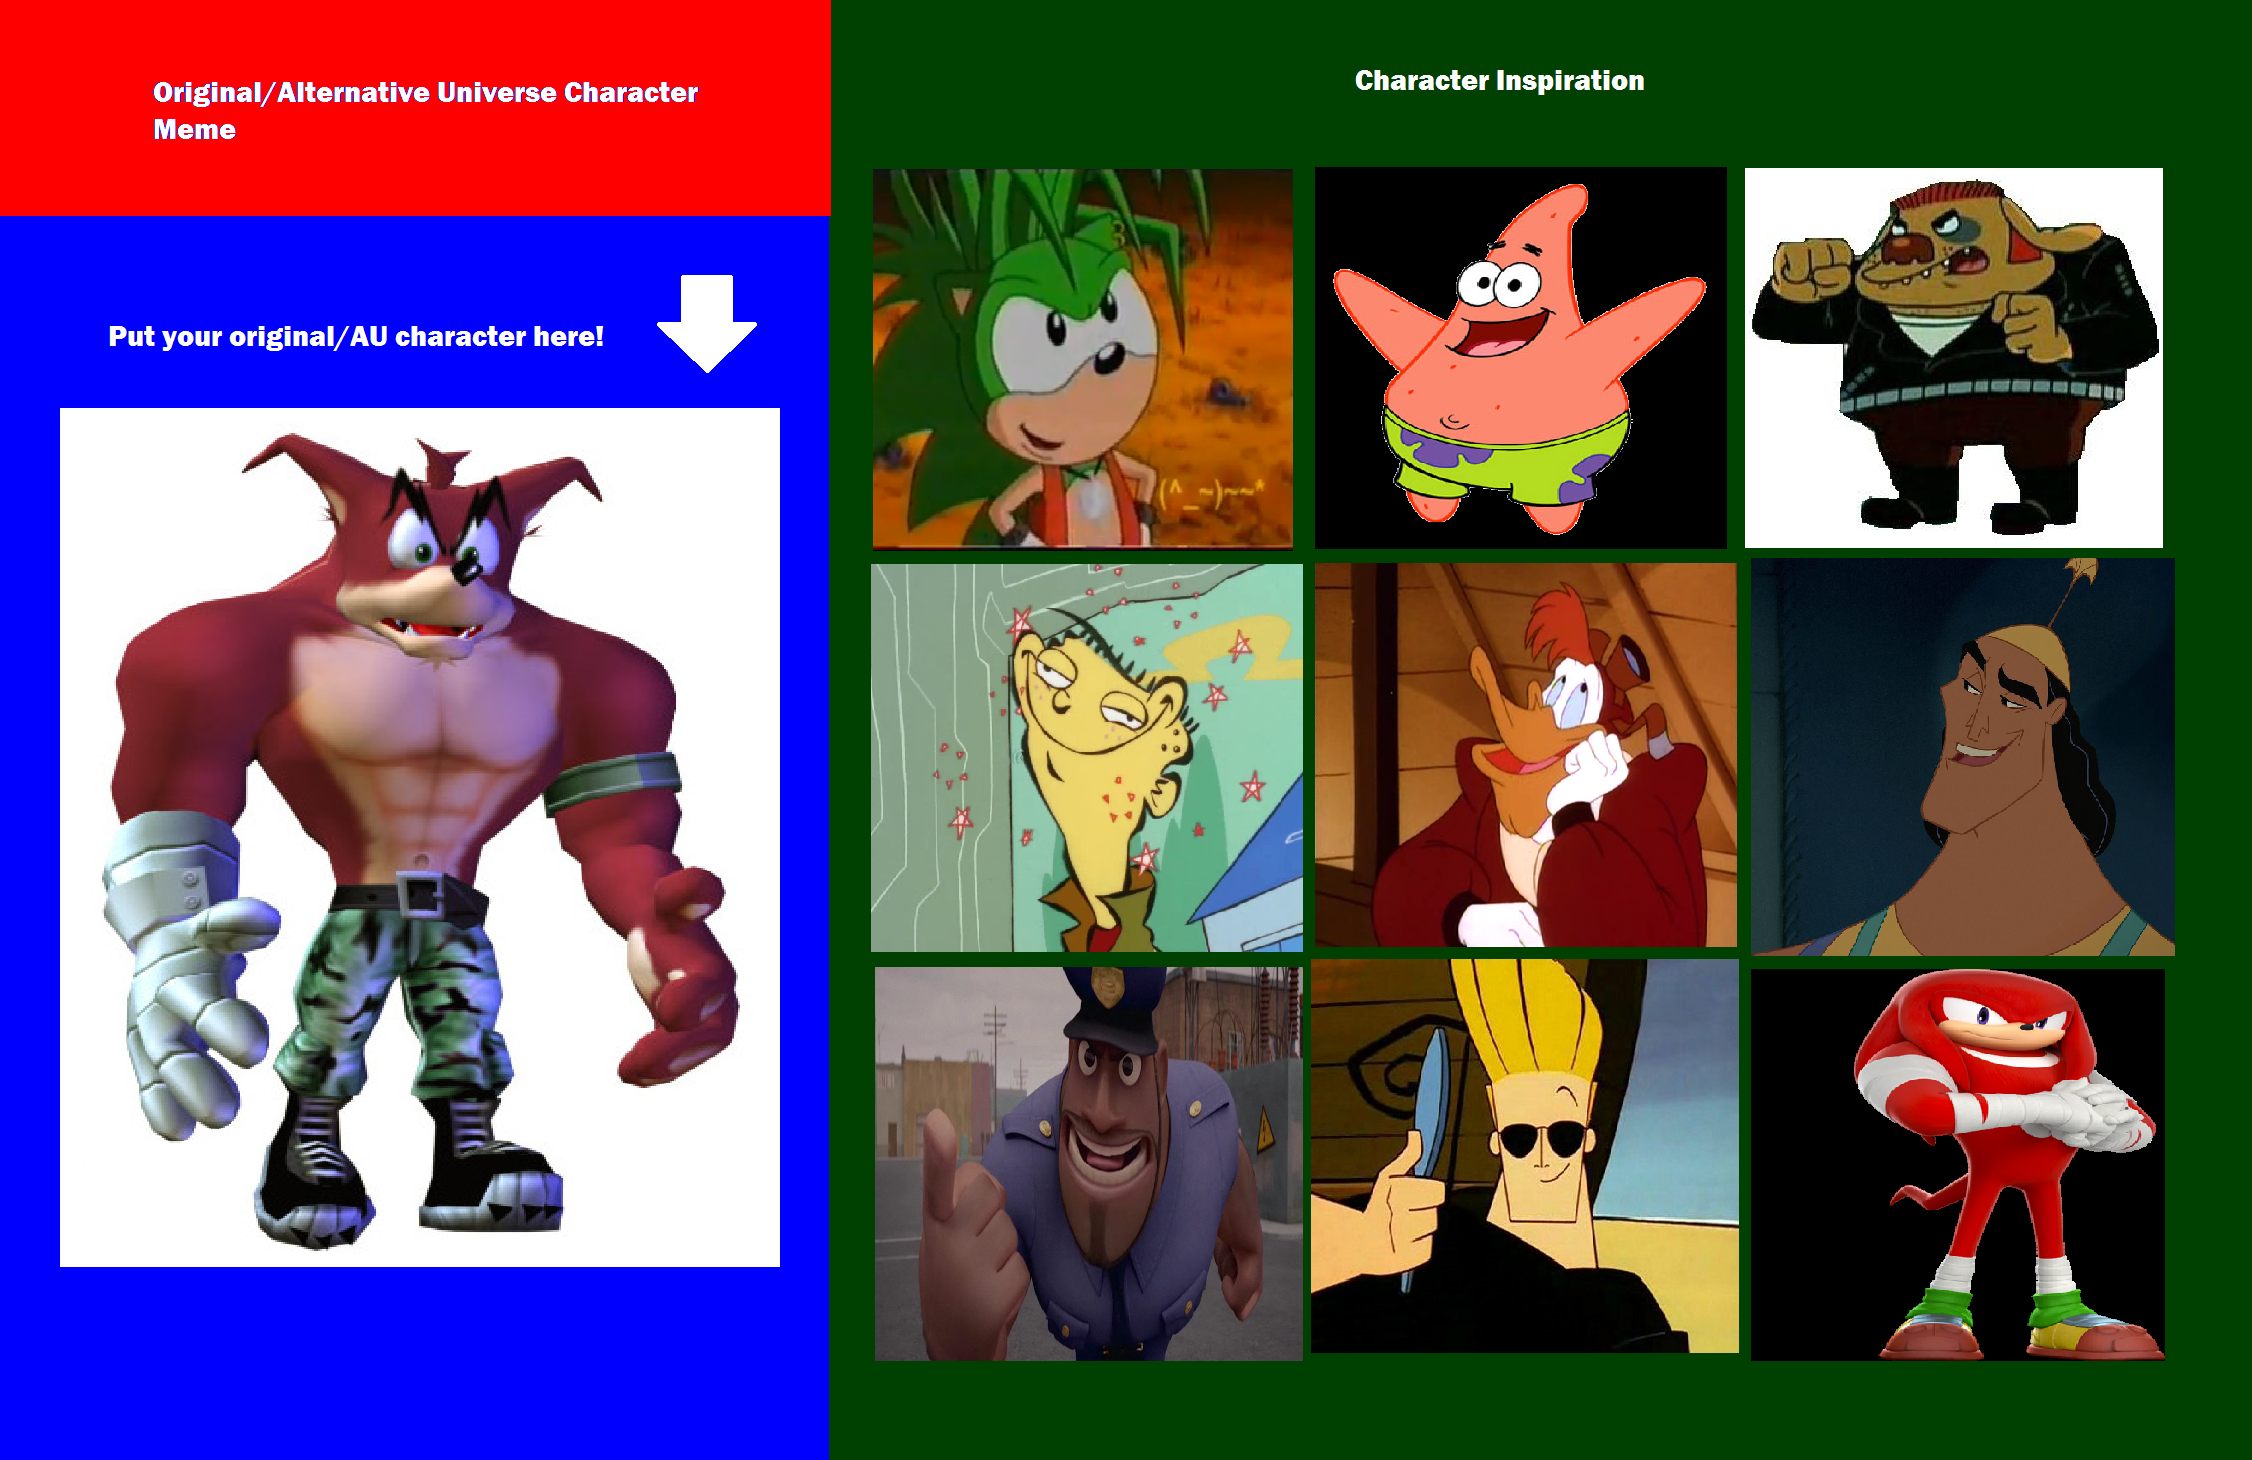 Crunch Bandicoot's Inspirations by Prentis-65